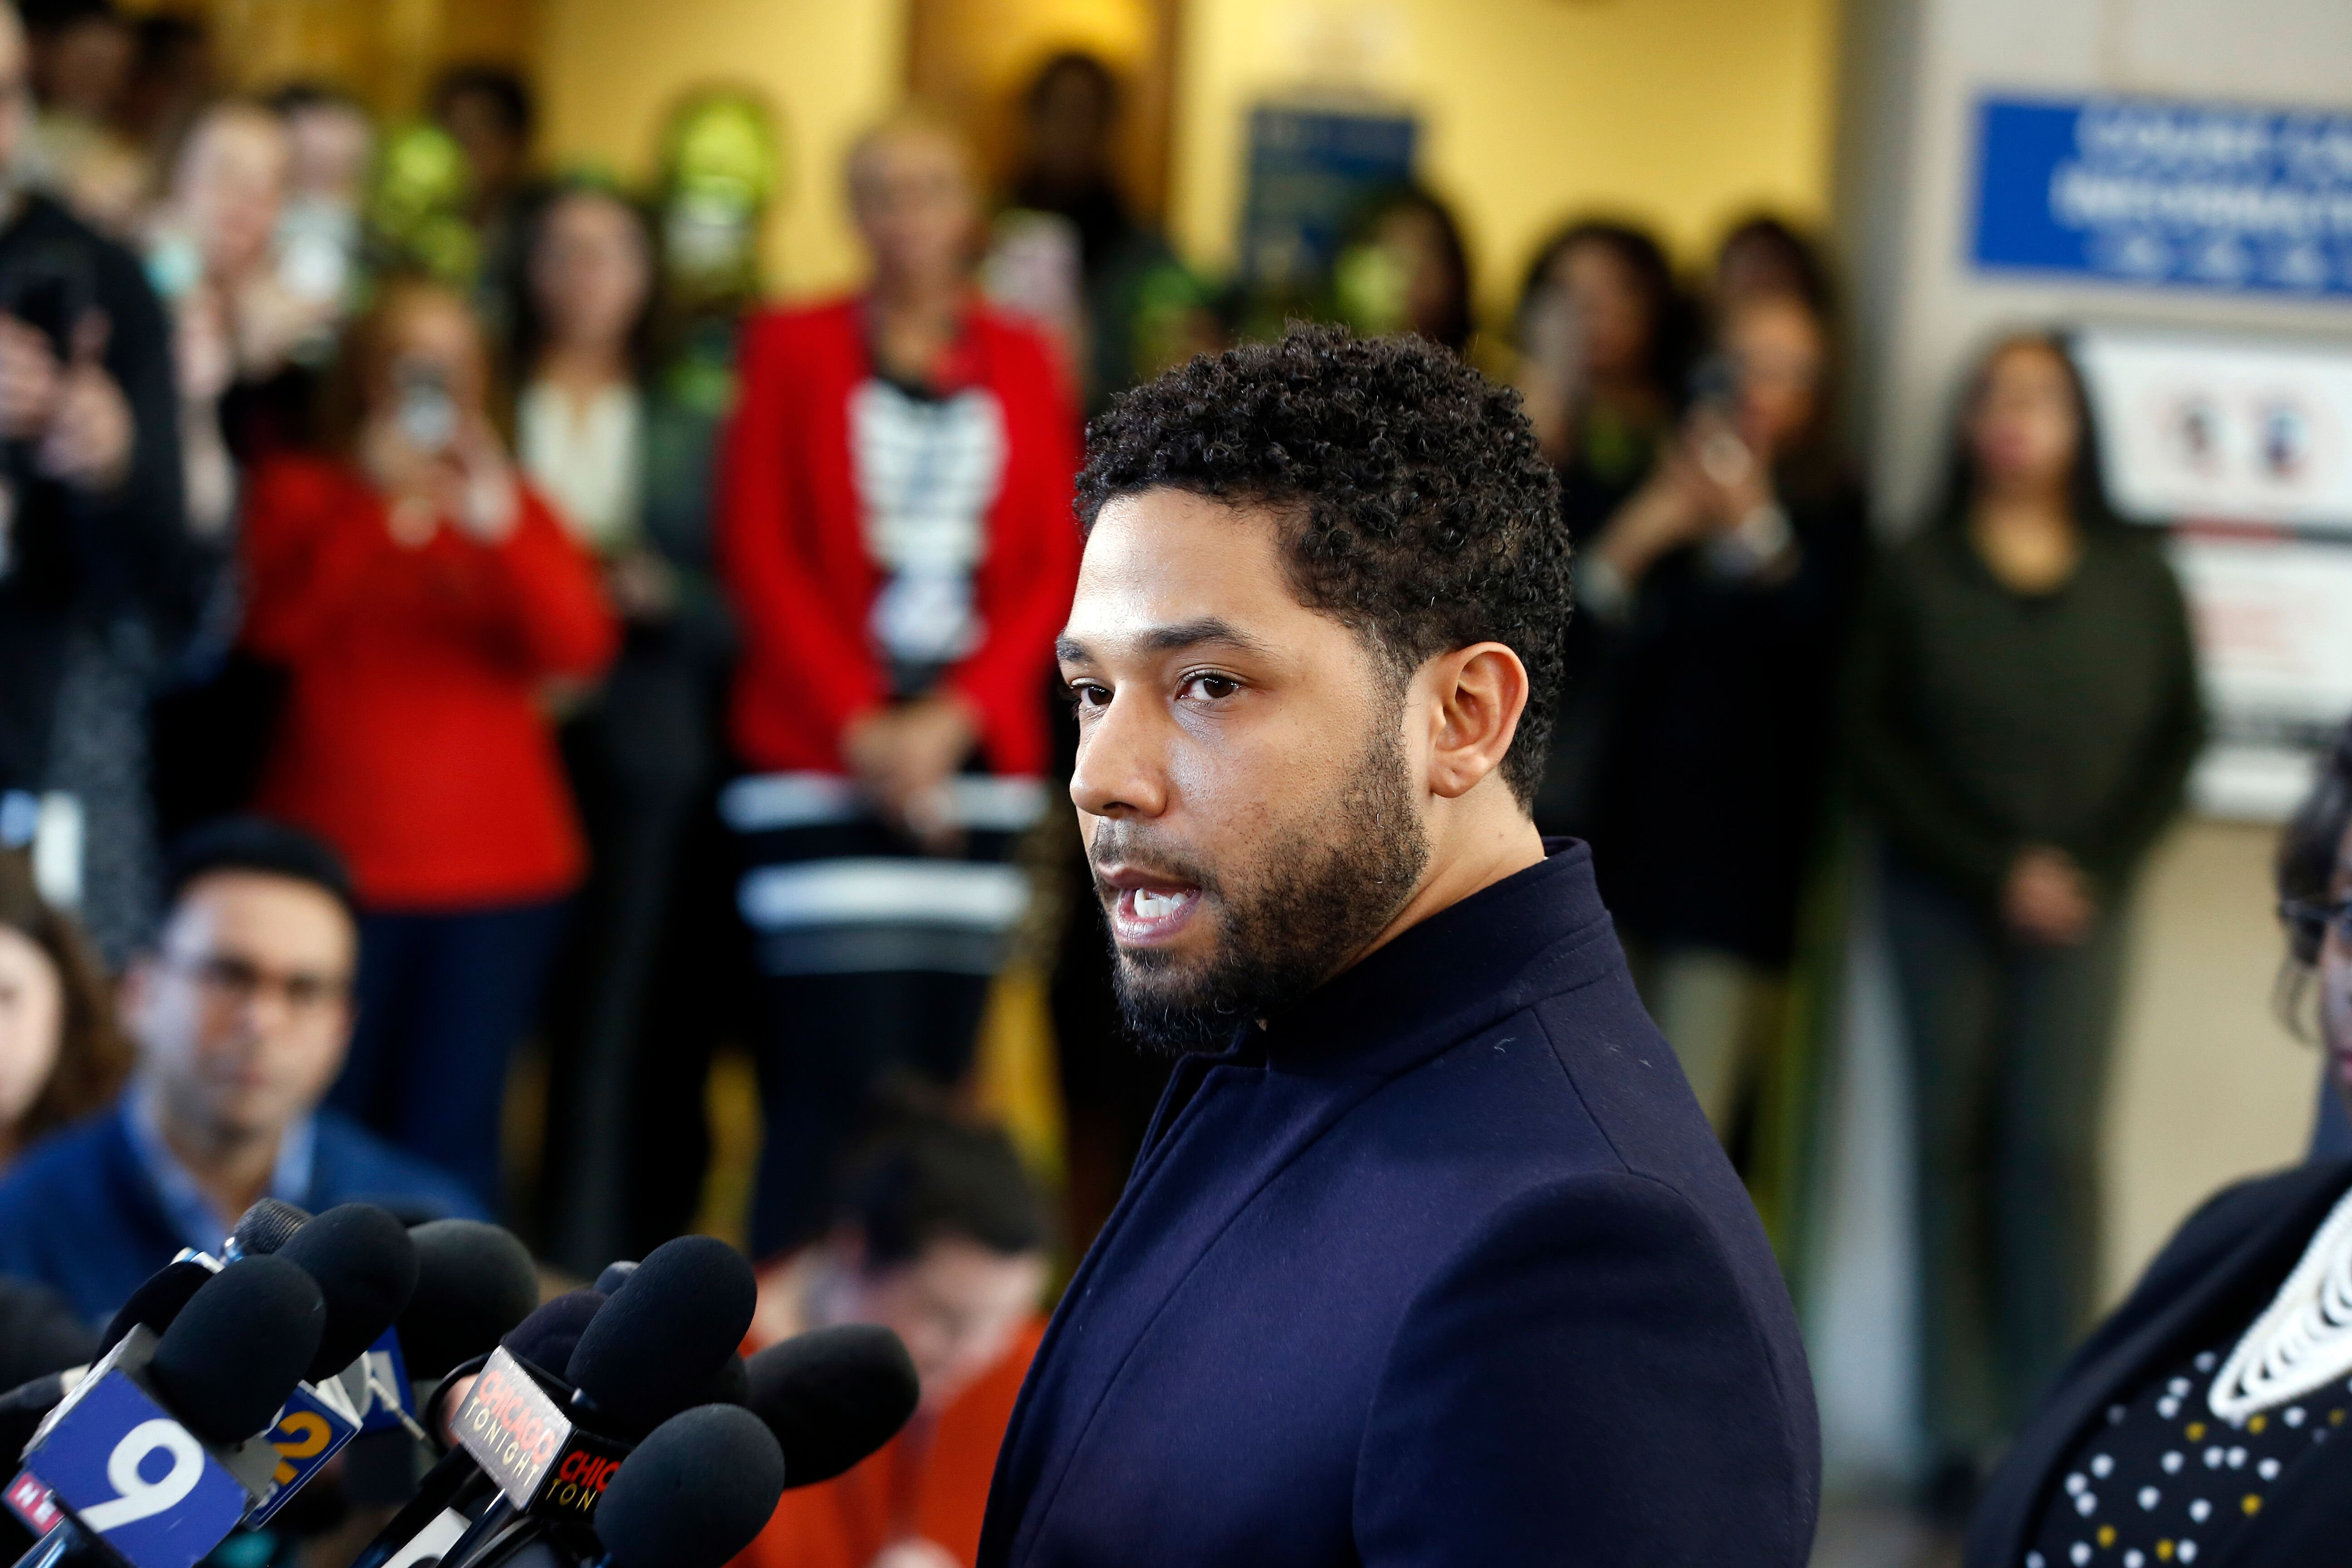 Jussie Smollett leaves after his court appearance at Leighton Courthouse in Chicago in March 2019. | Photo: Getty Images/GlobalImagesUkraine